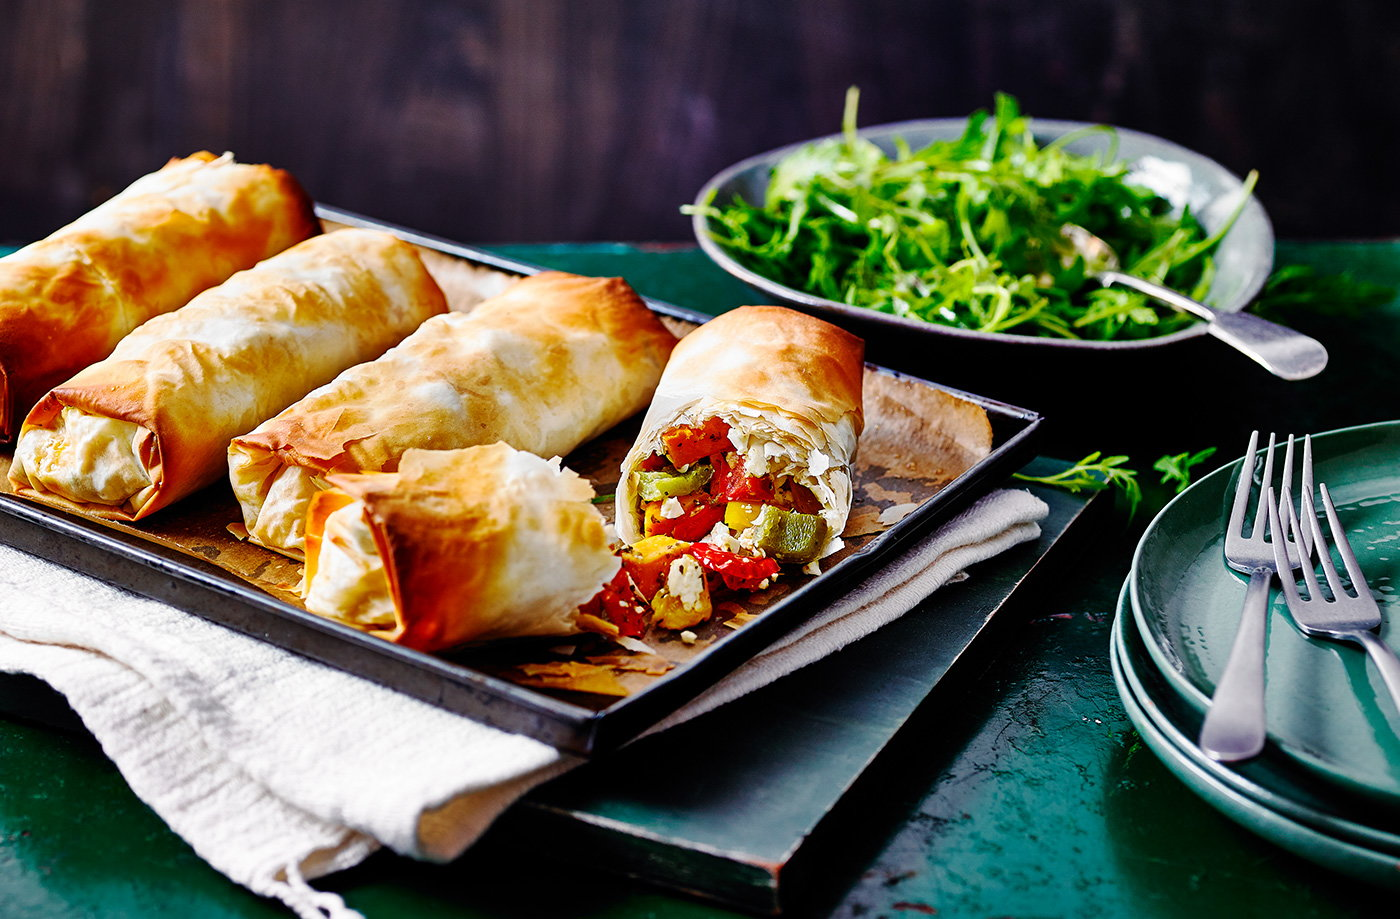 Cheesy vegetable strudels recipe